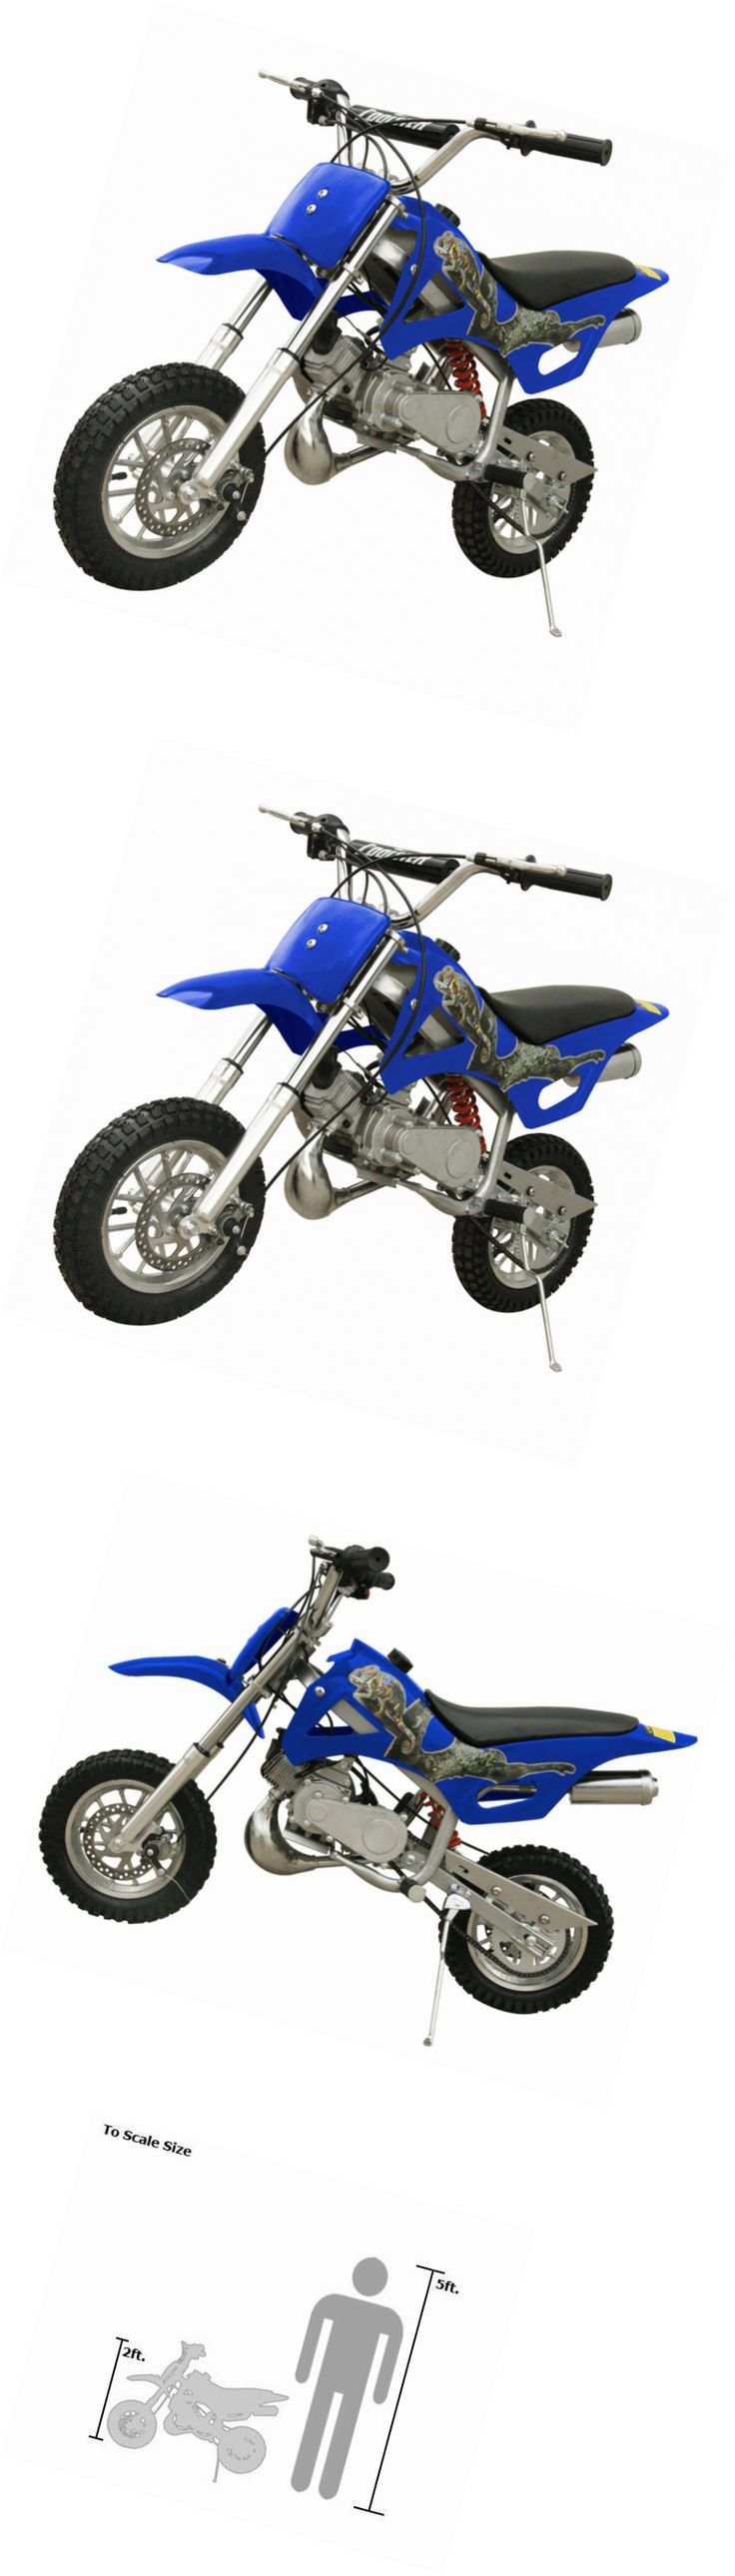 Gas Scooters 75211: 49Cc 50Cc 2-Stroke Gas Motorized Mini Dirt Pit Bike (Blue) -> BUY IT NOW ONLY: $358.88 on eBay!